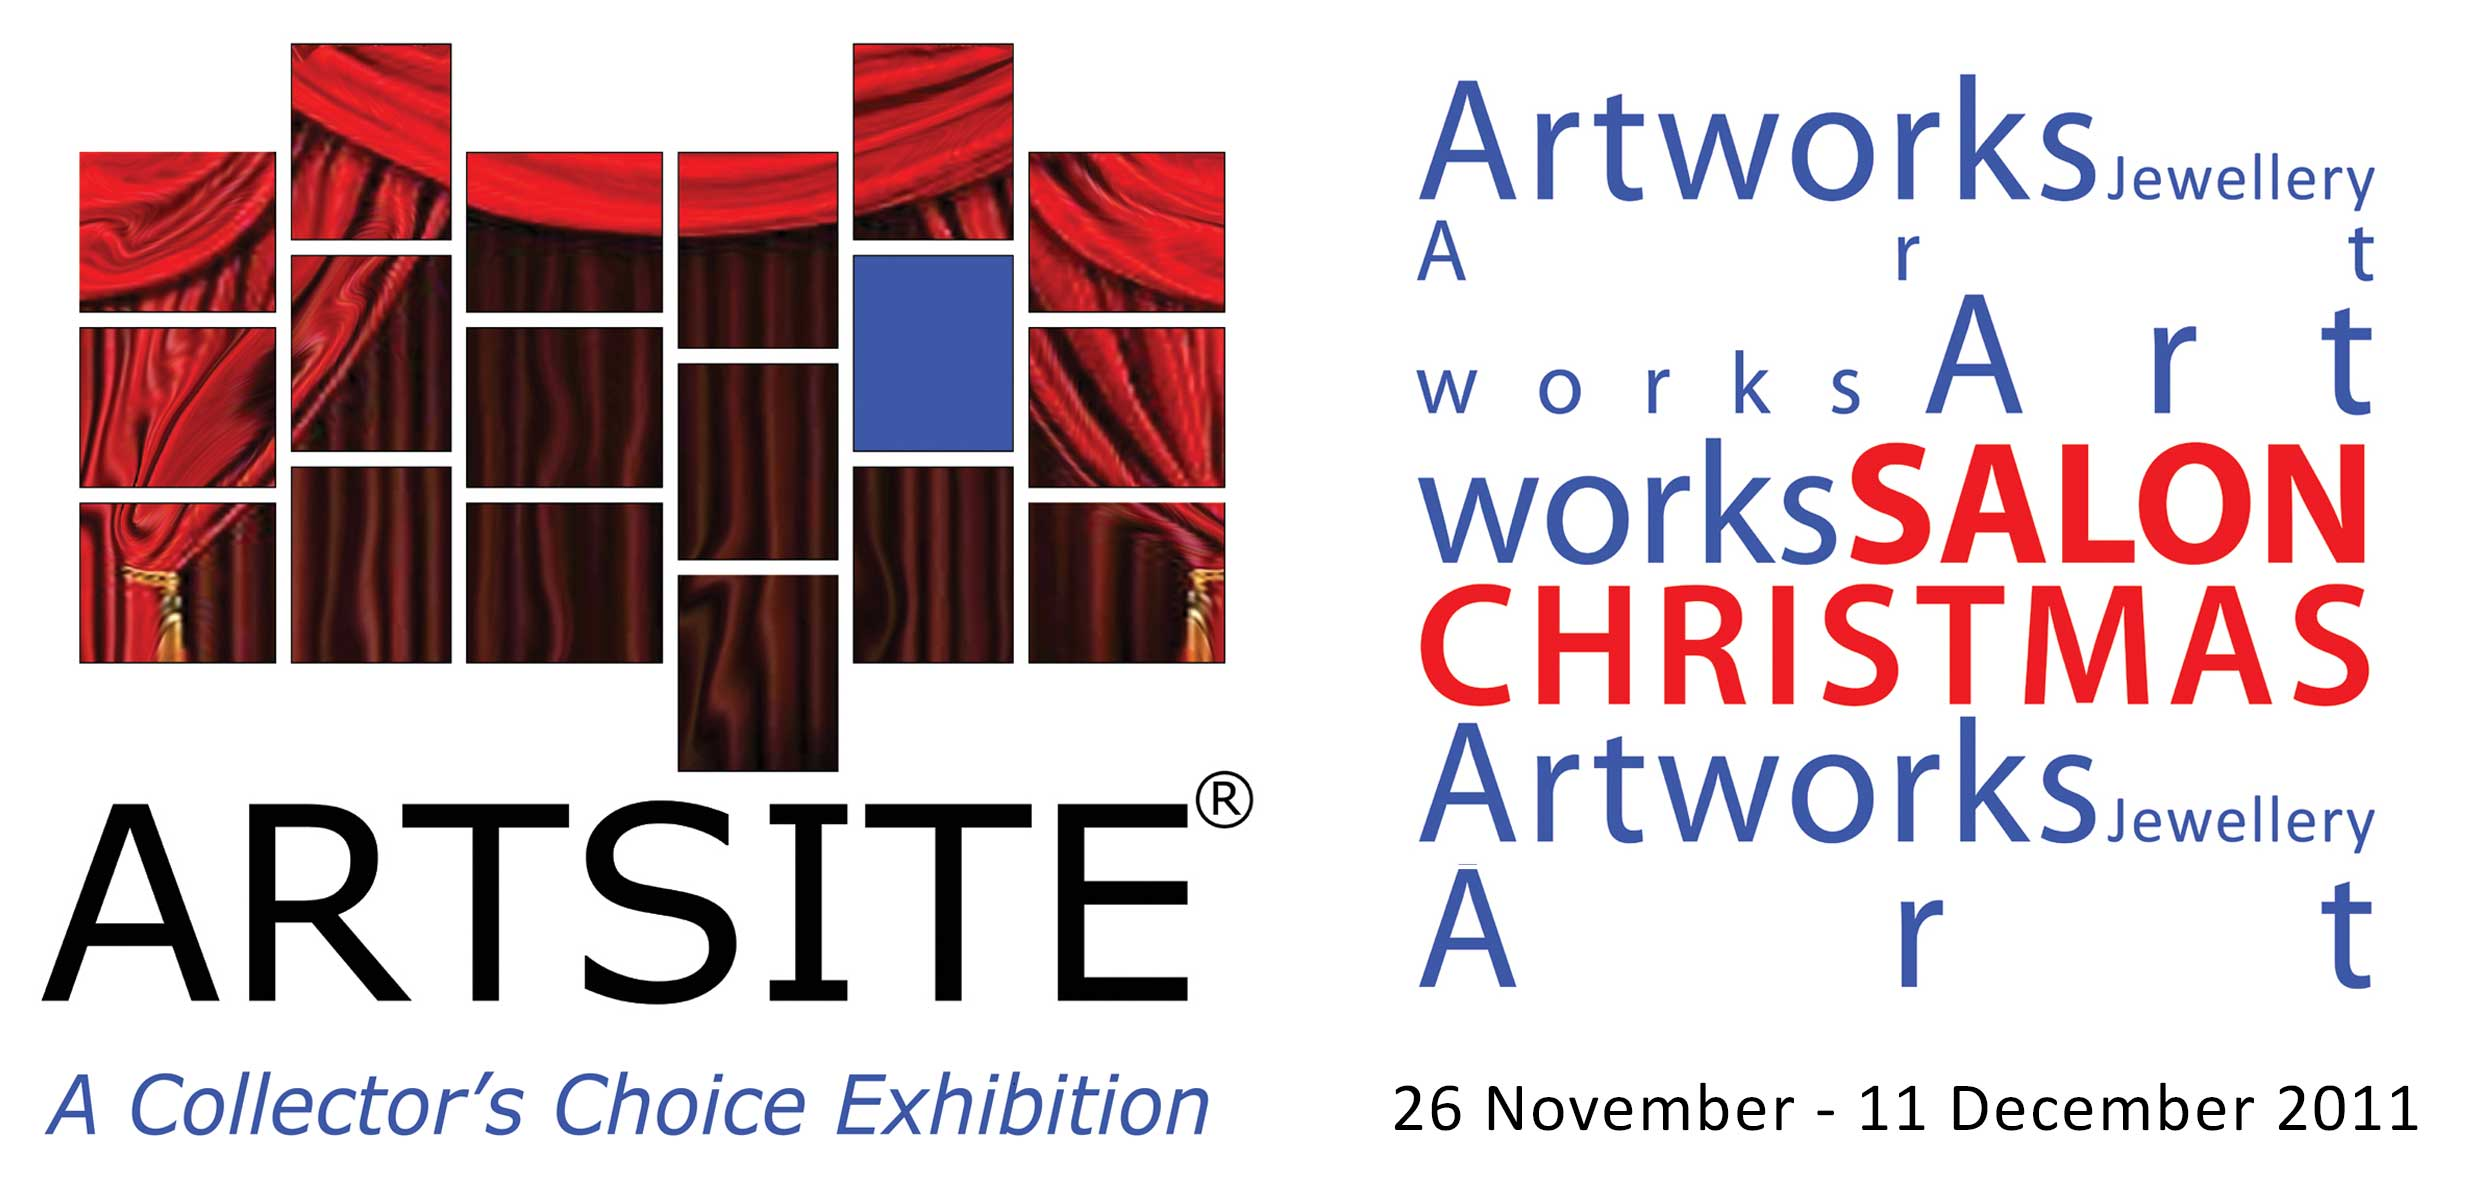 View Exhibition at Artsite Gallery, Sydney: 26 November - 11 December 2011. Collector's Choice 2011.